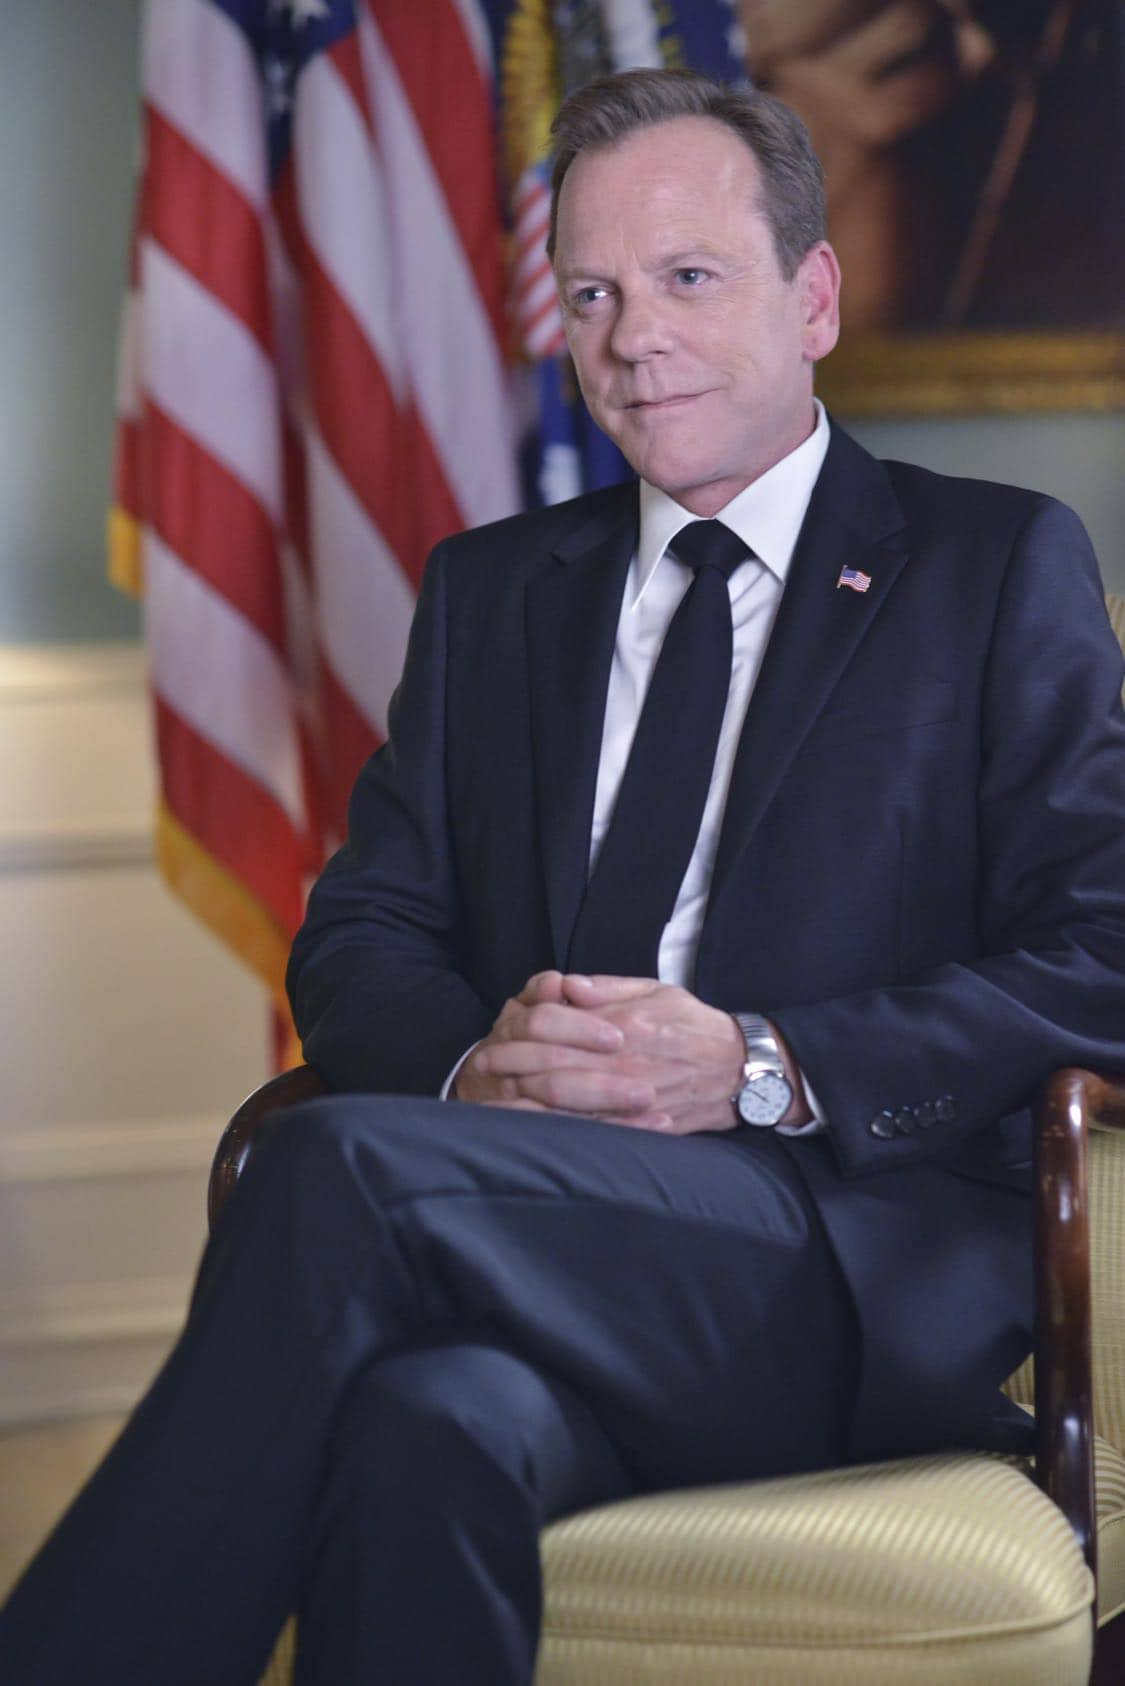 """DESIGNATED SURVIVOR - """"The Confession"""" – President Kirkman and his staff work to keep a high-level security breach of the White House a secret just as he's about to give his first television interview. Meanwhile, the FBI continues to investigate the Capitol bombing, and Agent Hannah Wells starts to develop her own theories about who was really behind the attack, on ABC's """"Designated Survivor,"""" WEDNESDAY, OCTOBER 5 (10:00—11:00 p.m. EDT). (ABC/Sven Frenzel) KIEFER SUTHERLAND"""